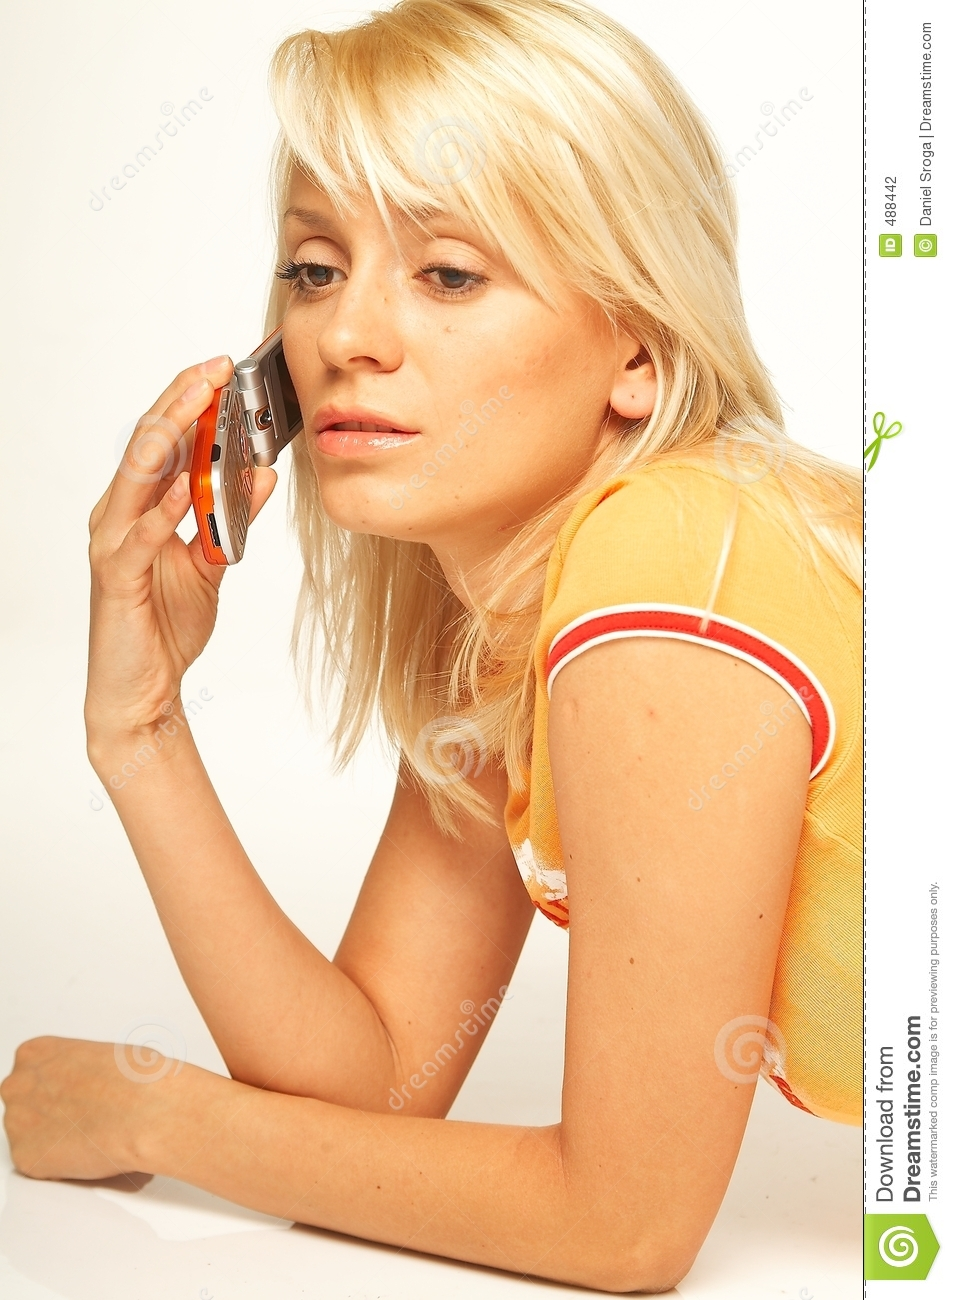 Business Woman On The Phone Stock Photo - Image: 5752334